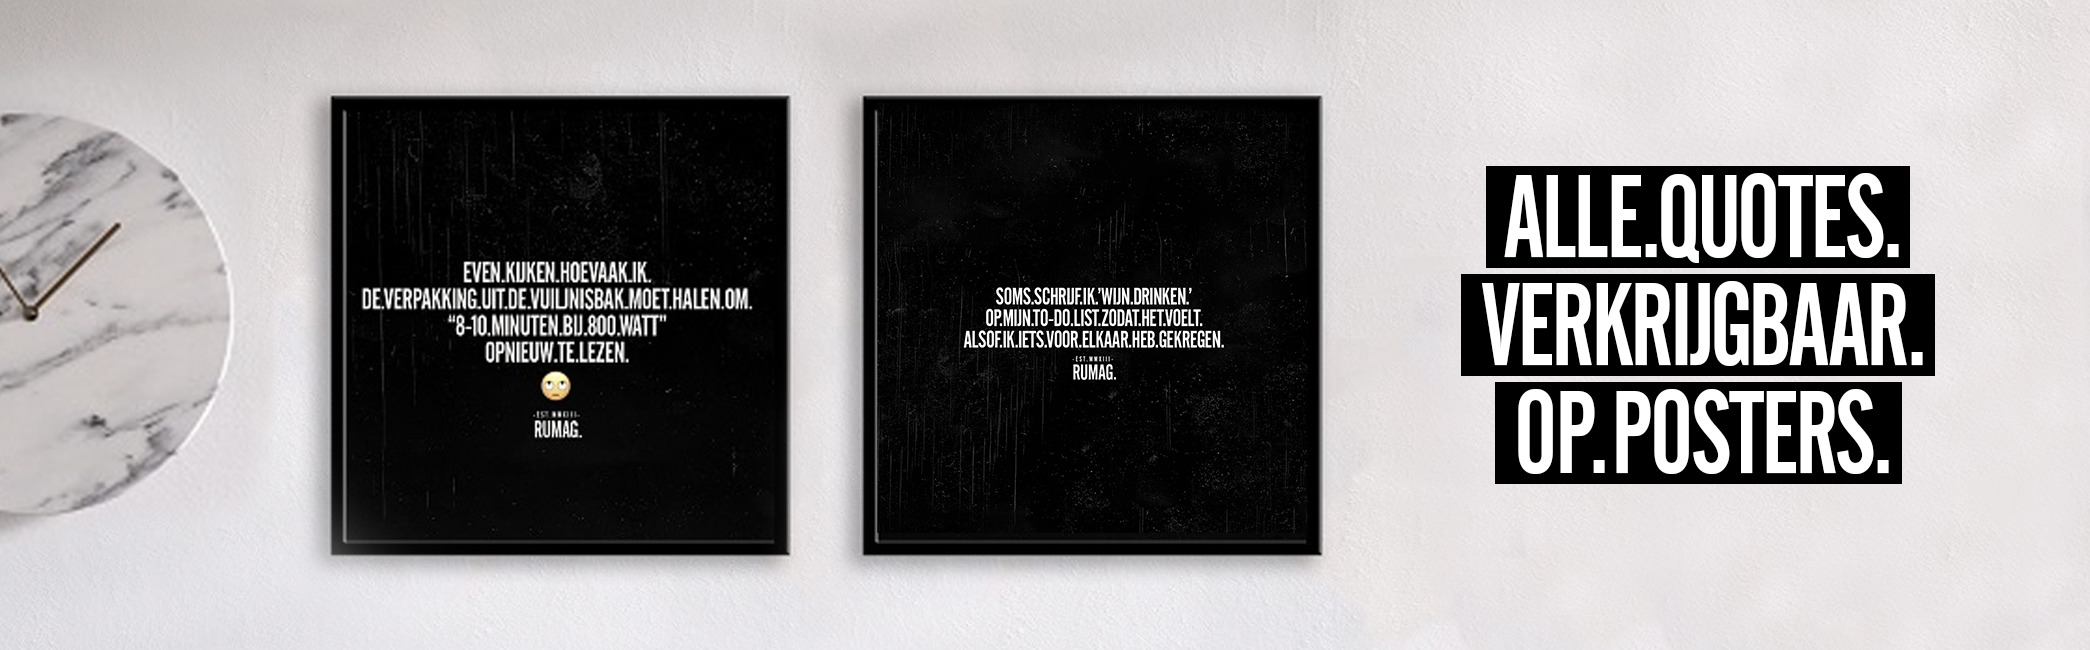 HEADER-quoteposter